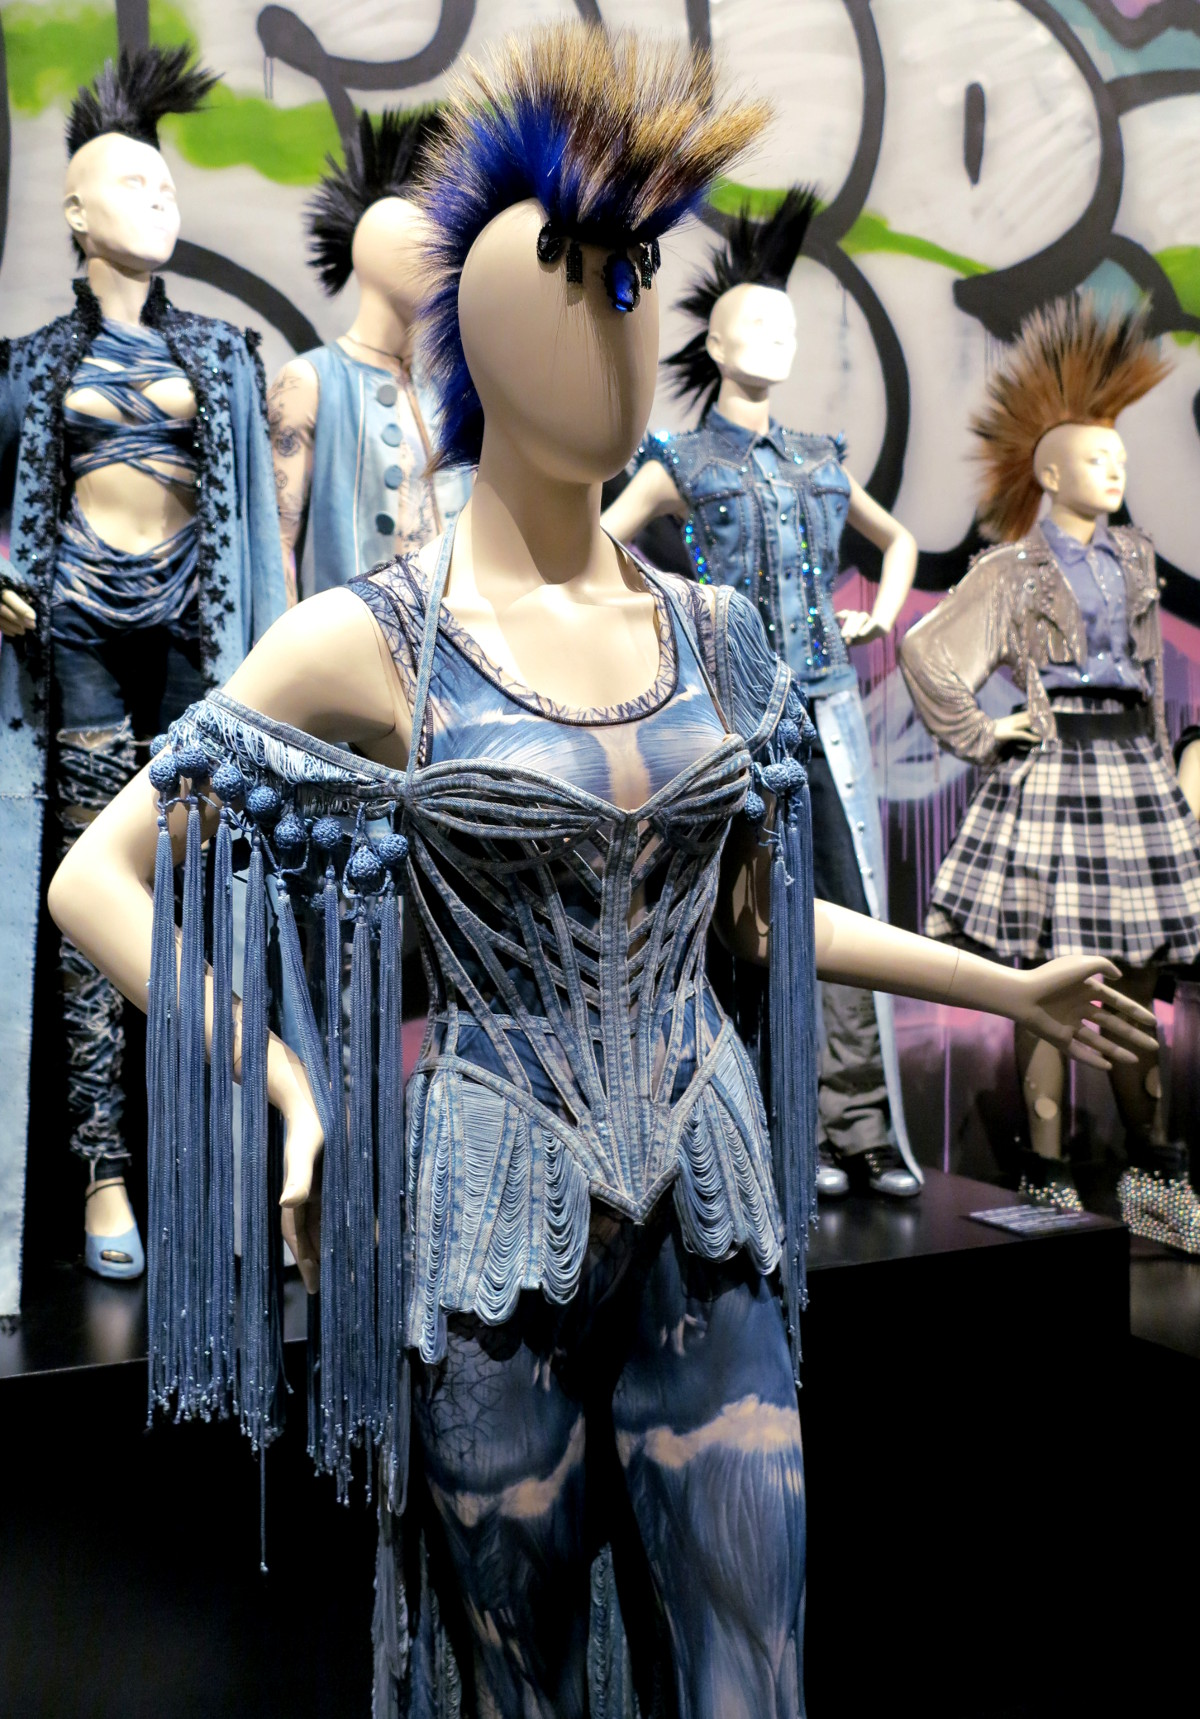 Denium punk Jean Paul Gaultier National Gallery of Victoria